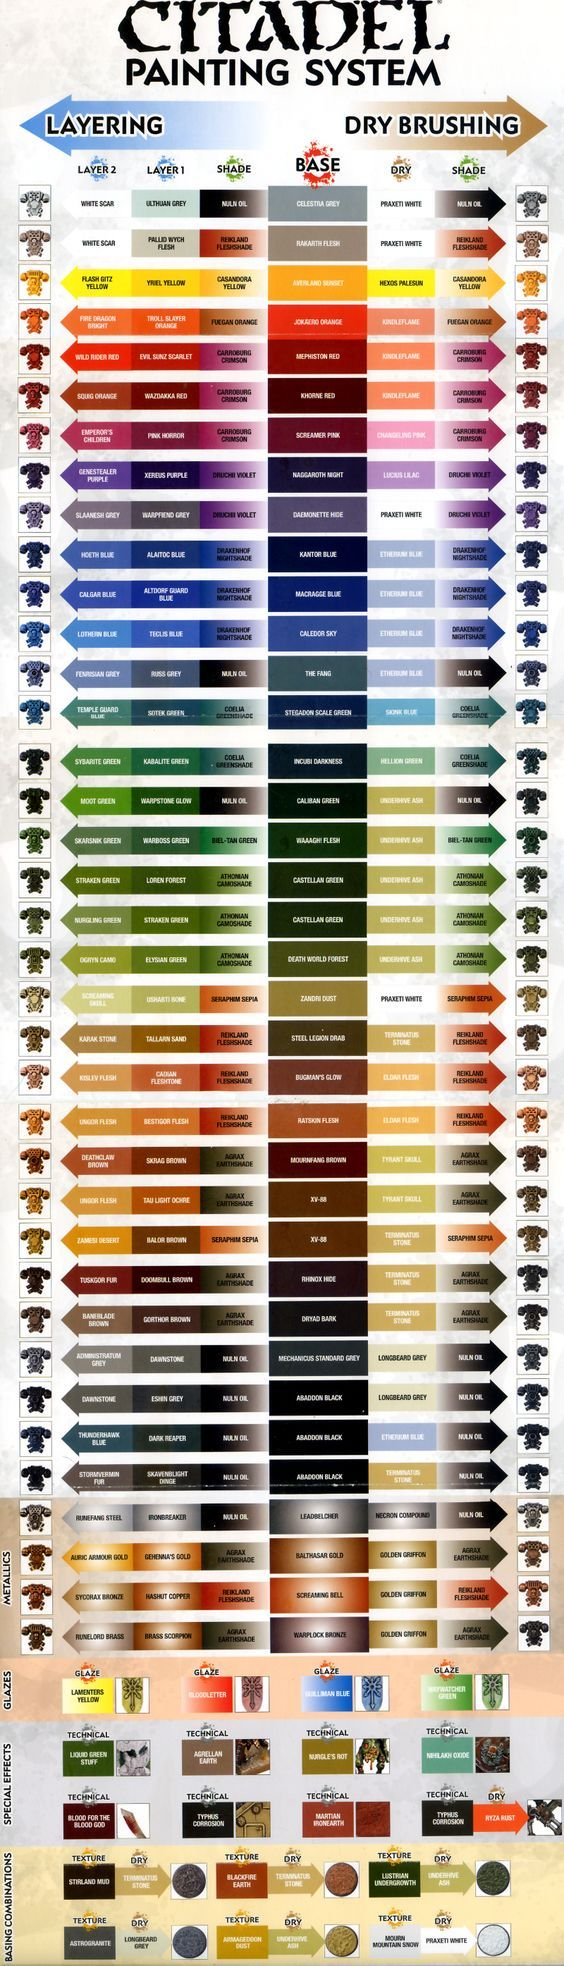 Game color chart - For Us This Ought To Give My Wife Some Color Options Nice Chart Of What Goes Together For Shades Colors